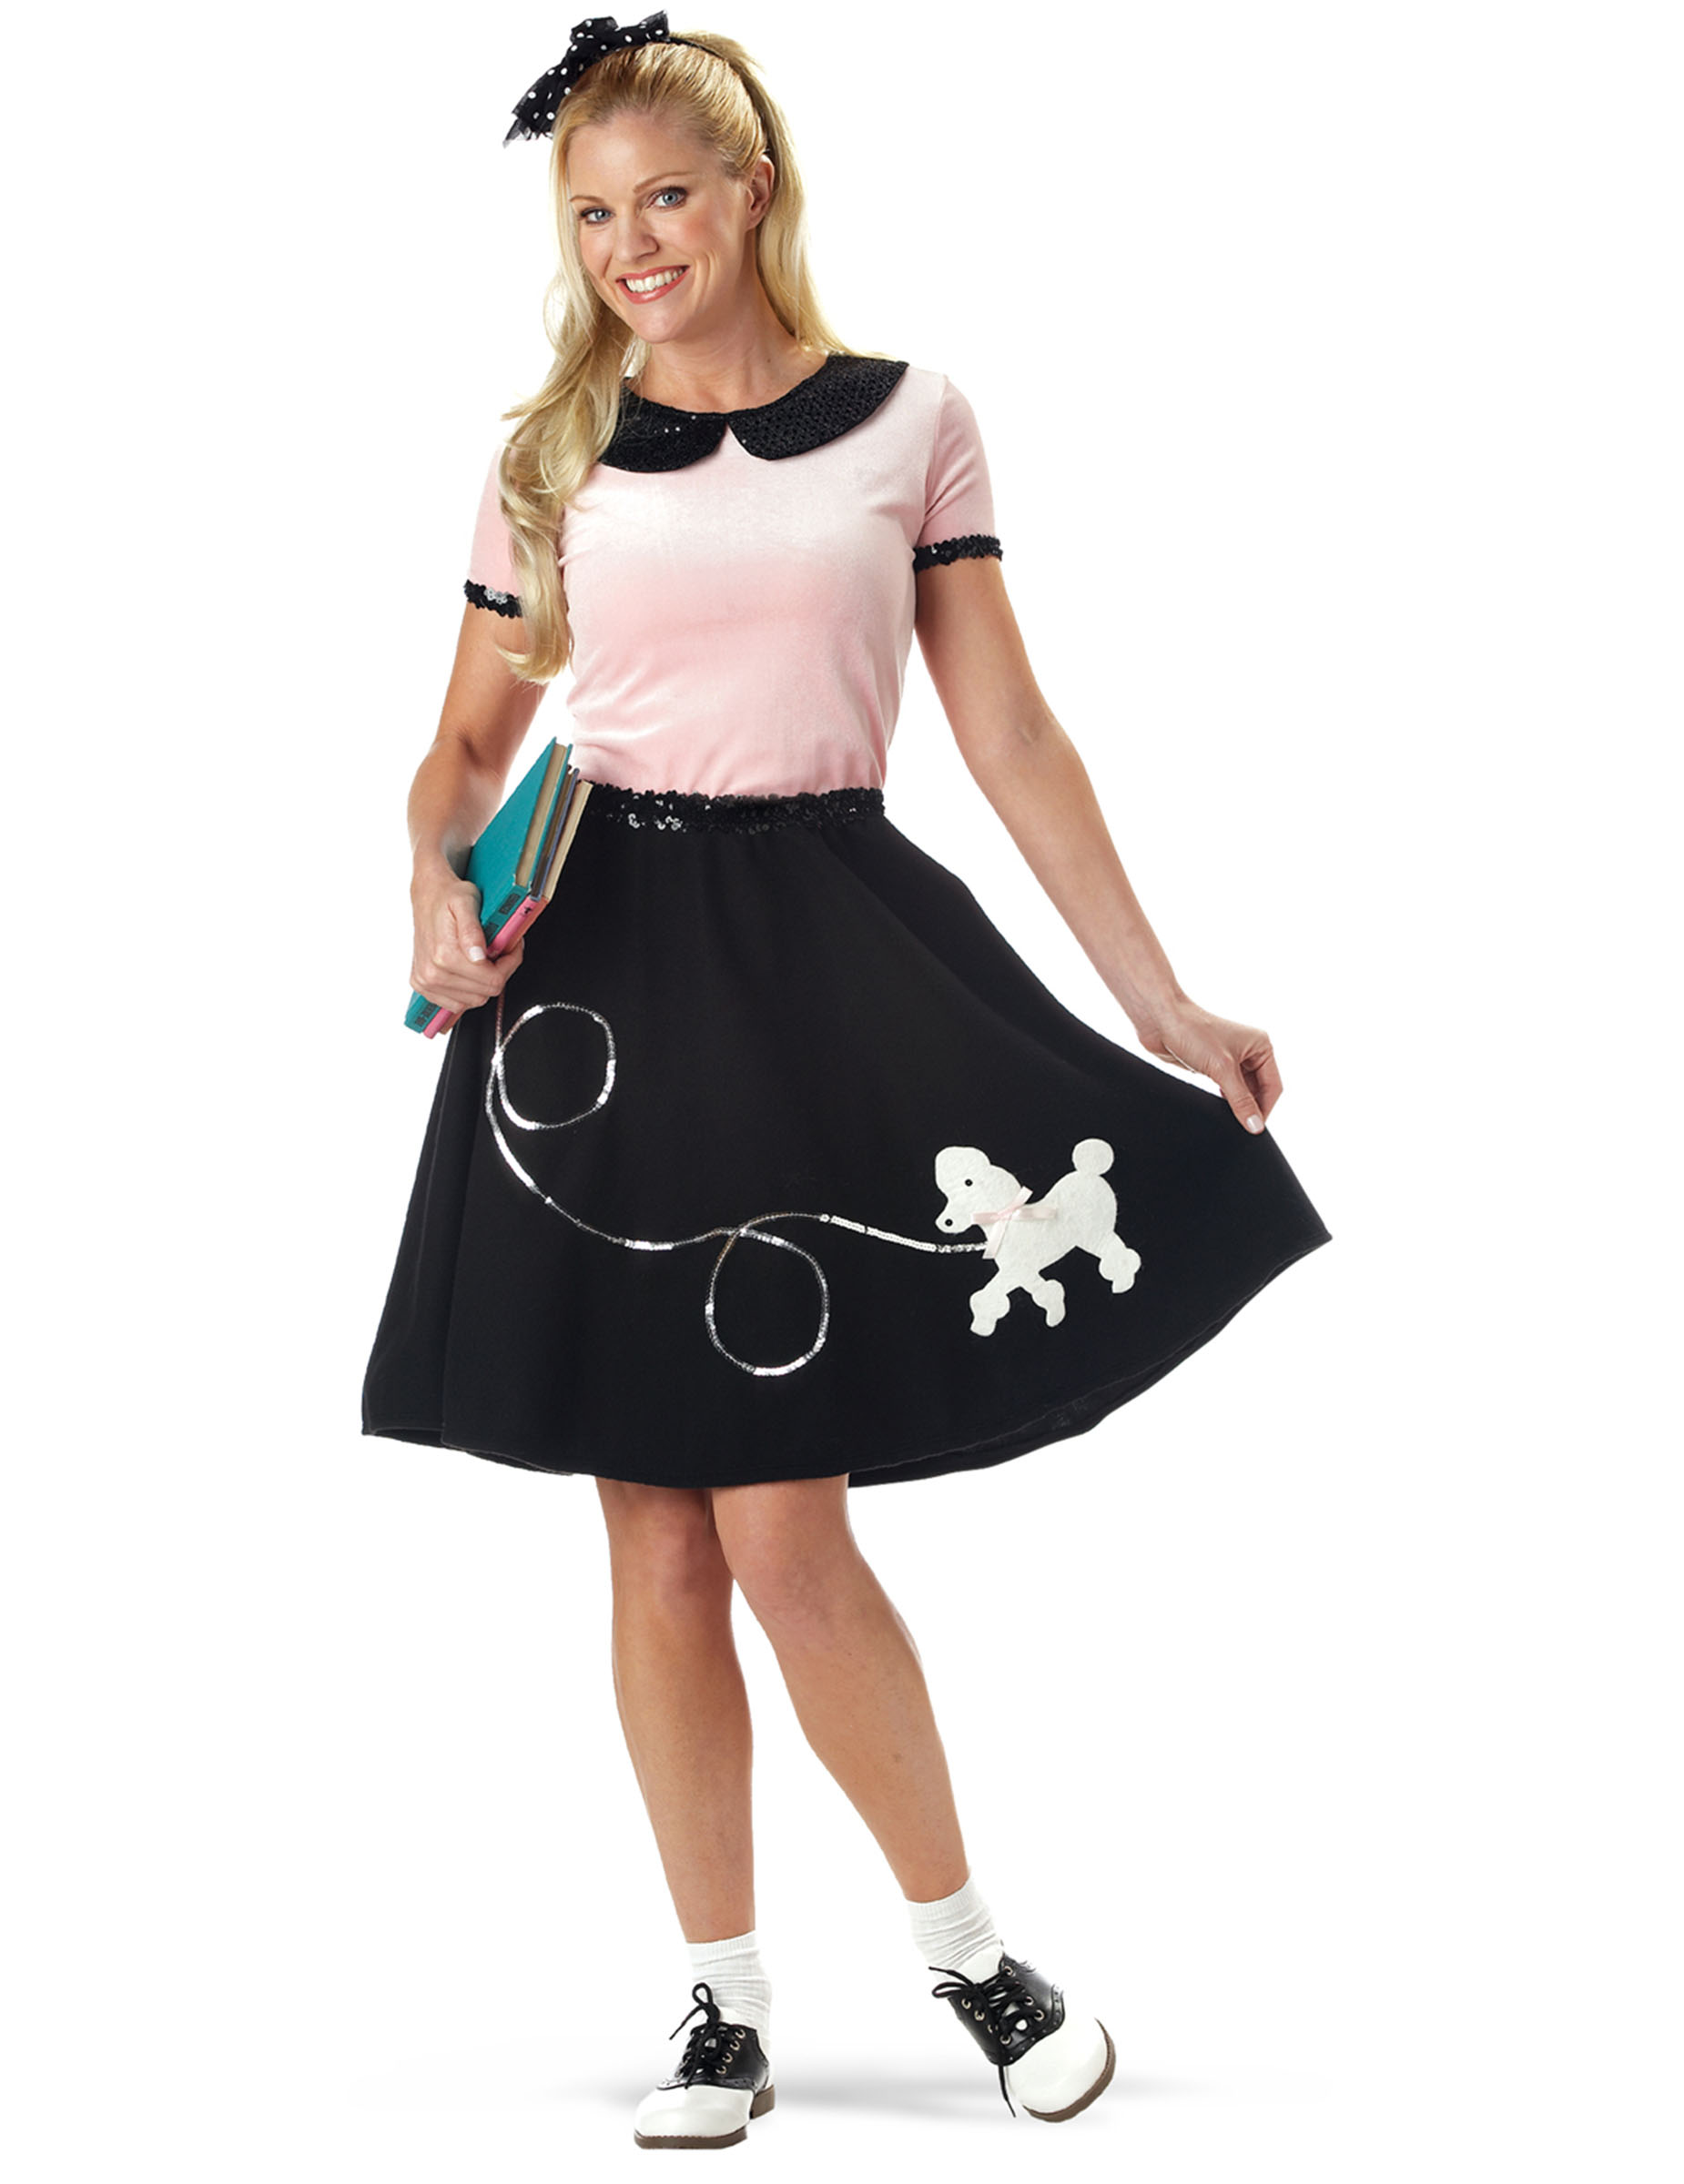 Completo 50 s donna su VegaooParty d9dd0f2c8a5